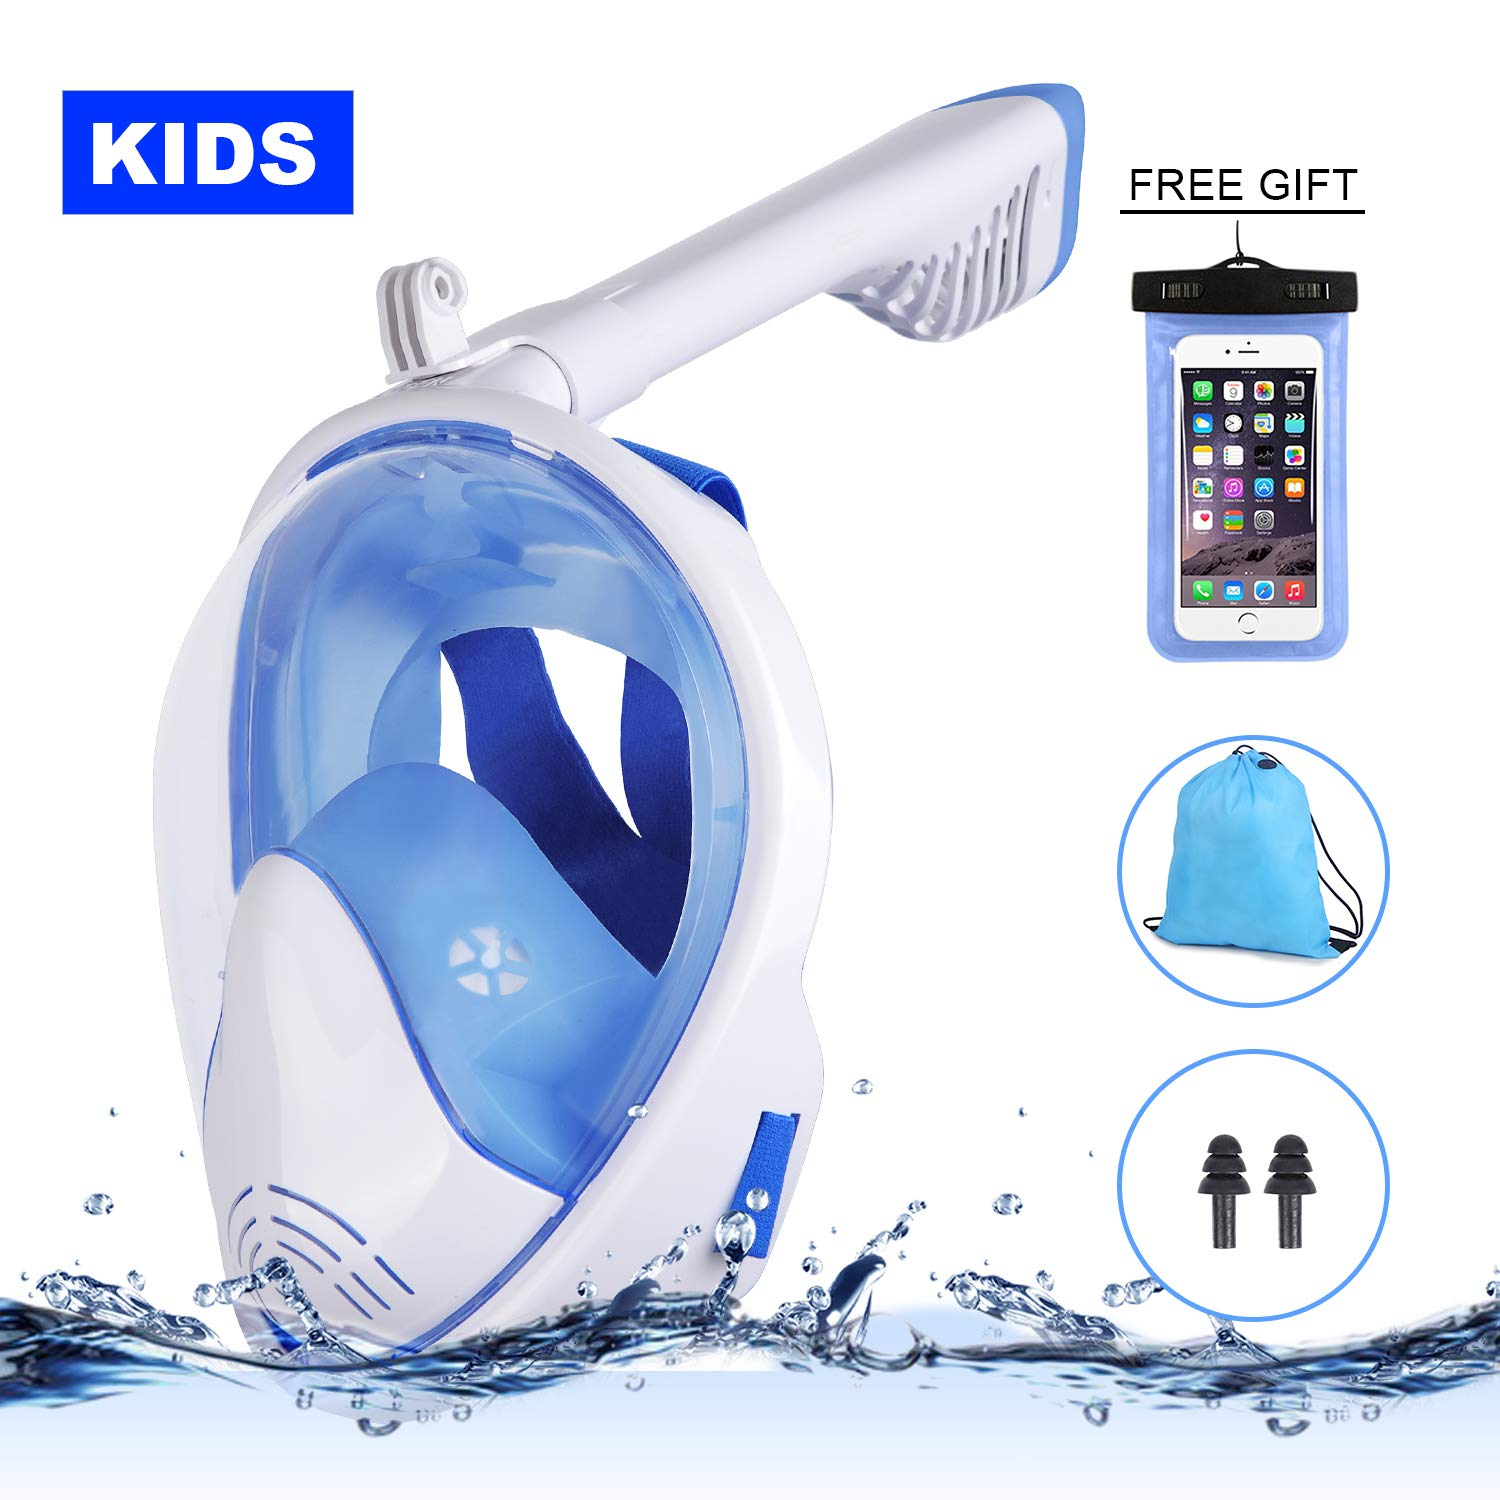 Full Face Snorkel Mask Kids, Swim Snorkel Mask Foldable Easy Carrying, 180°Panoramic View Anti-Fog Anti-Leak With Snorkel Tube Easy Breath and Detachable Camera Mount Easy Insatll For Swimming Snorkel